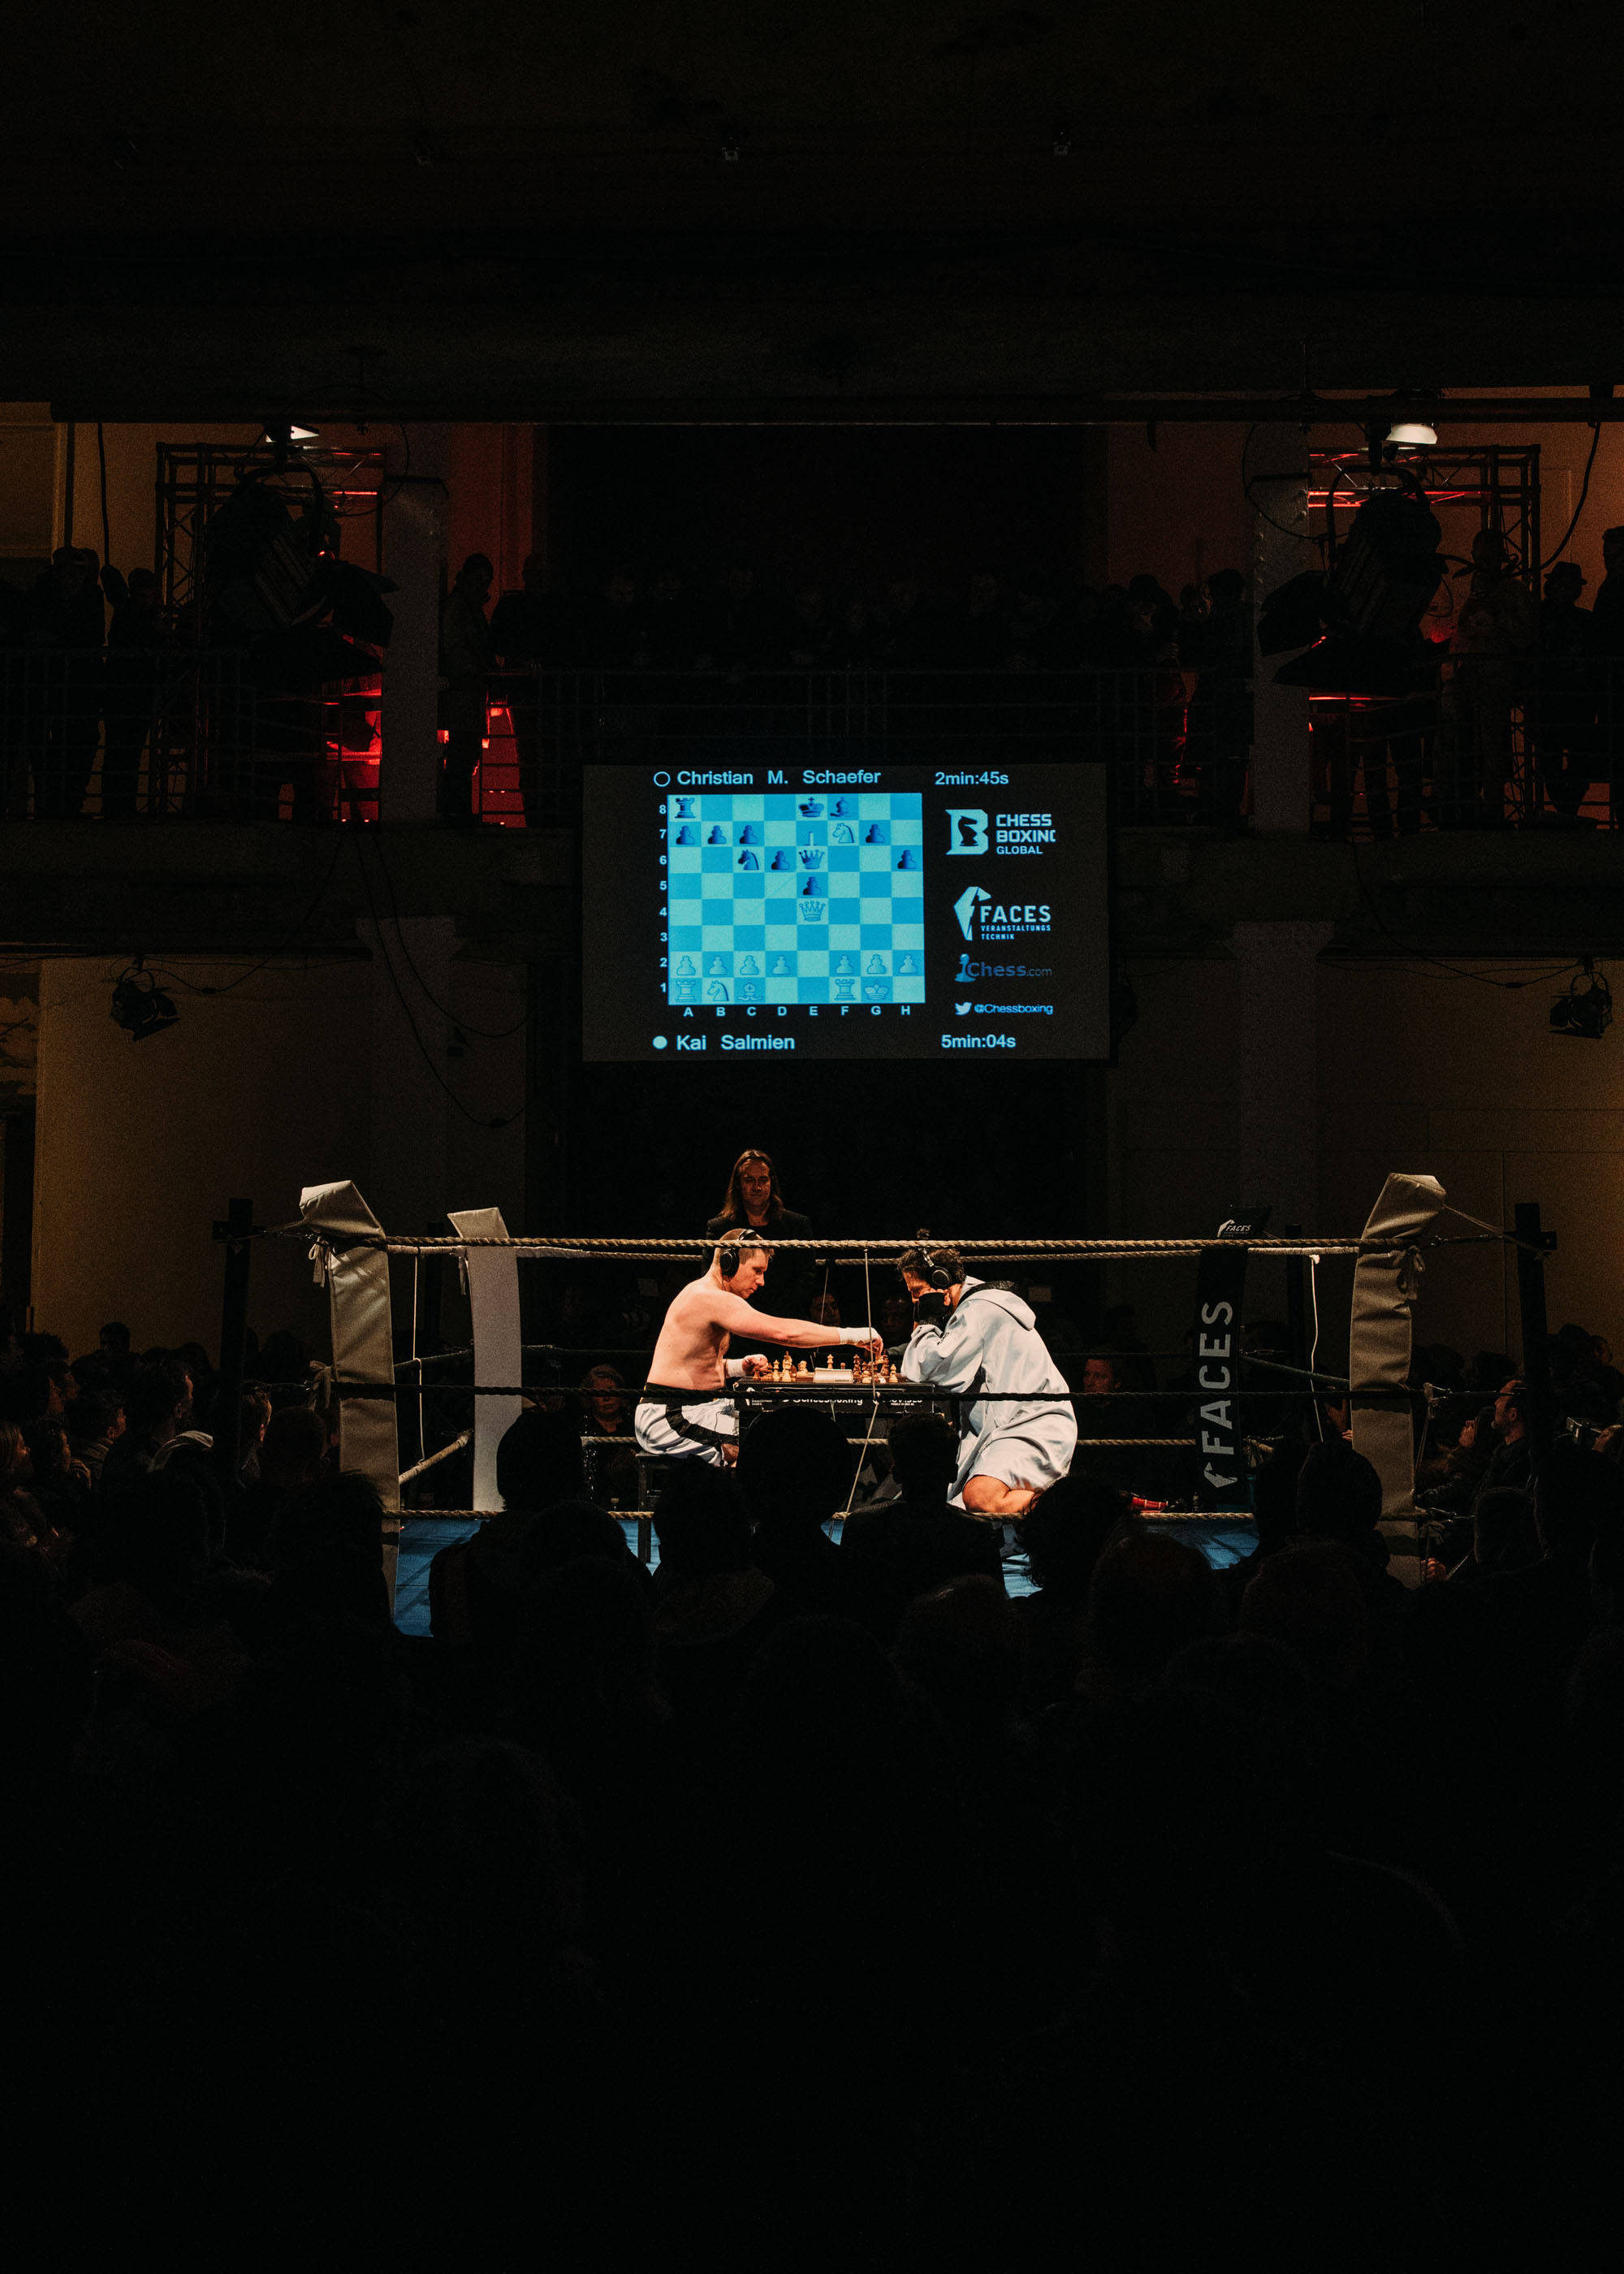 #editorial #chess #boxing #perdiz #querida #berlin